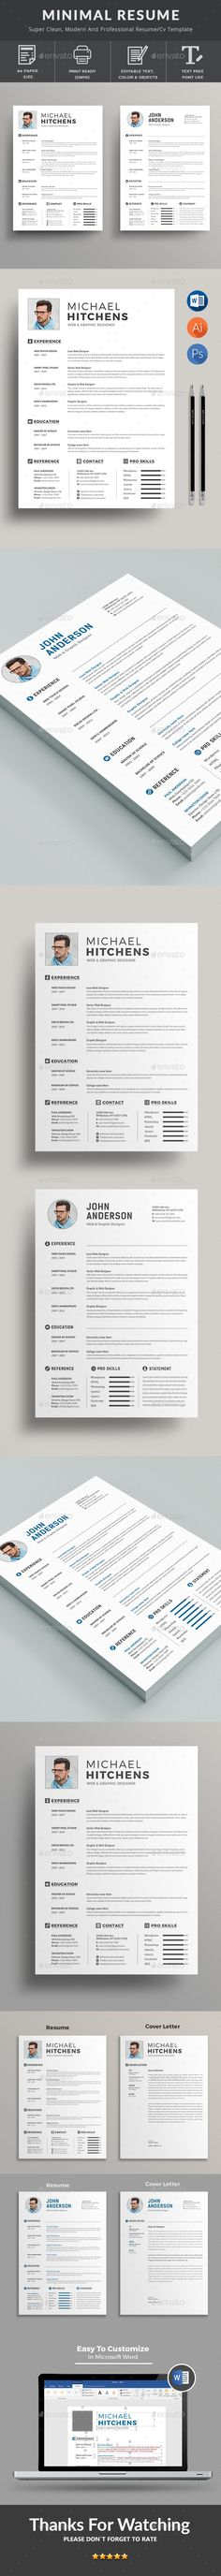 #Resume Templates is the super clean, The flexible page designs are easy to use and customize, modern and professional Resume templates to help you land that great job. Download here: https://graphicriver.net/item/resume/19698912?ref=classicdesignp